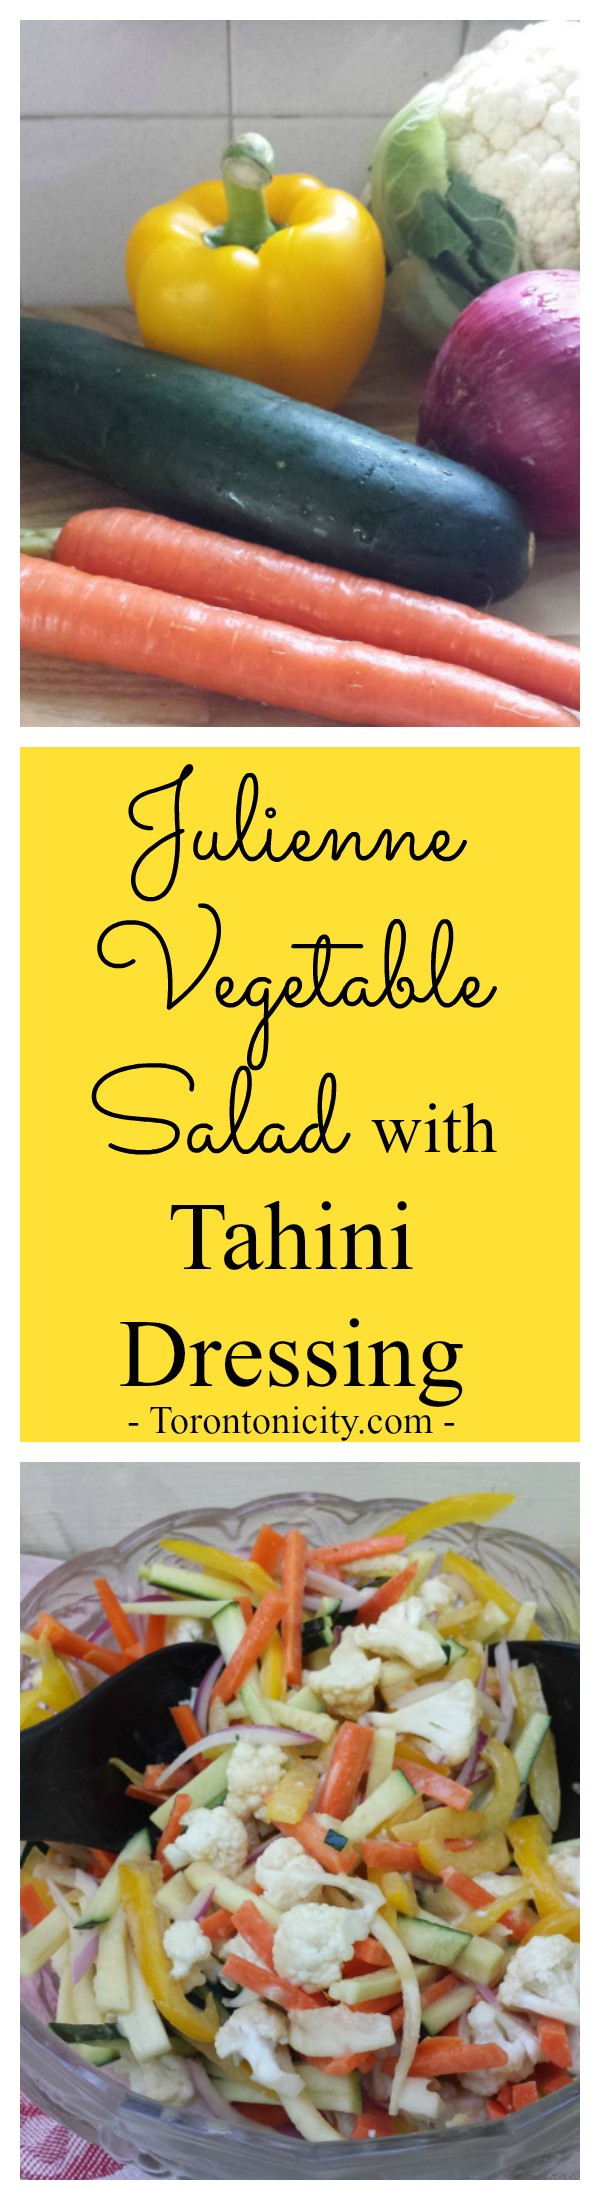 Julienne Vegetable Salad with Tahini Dressing